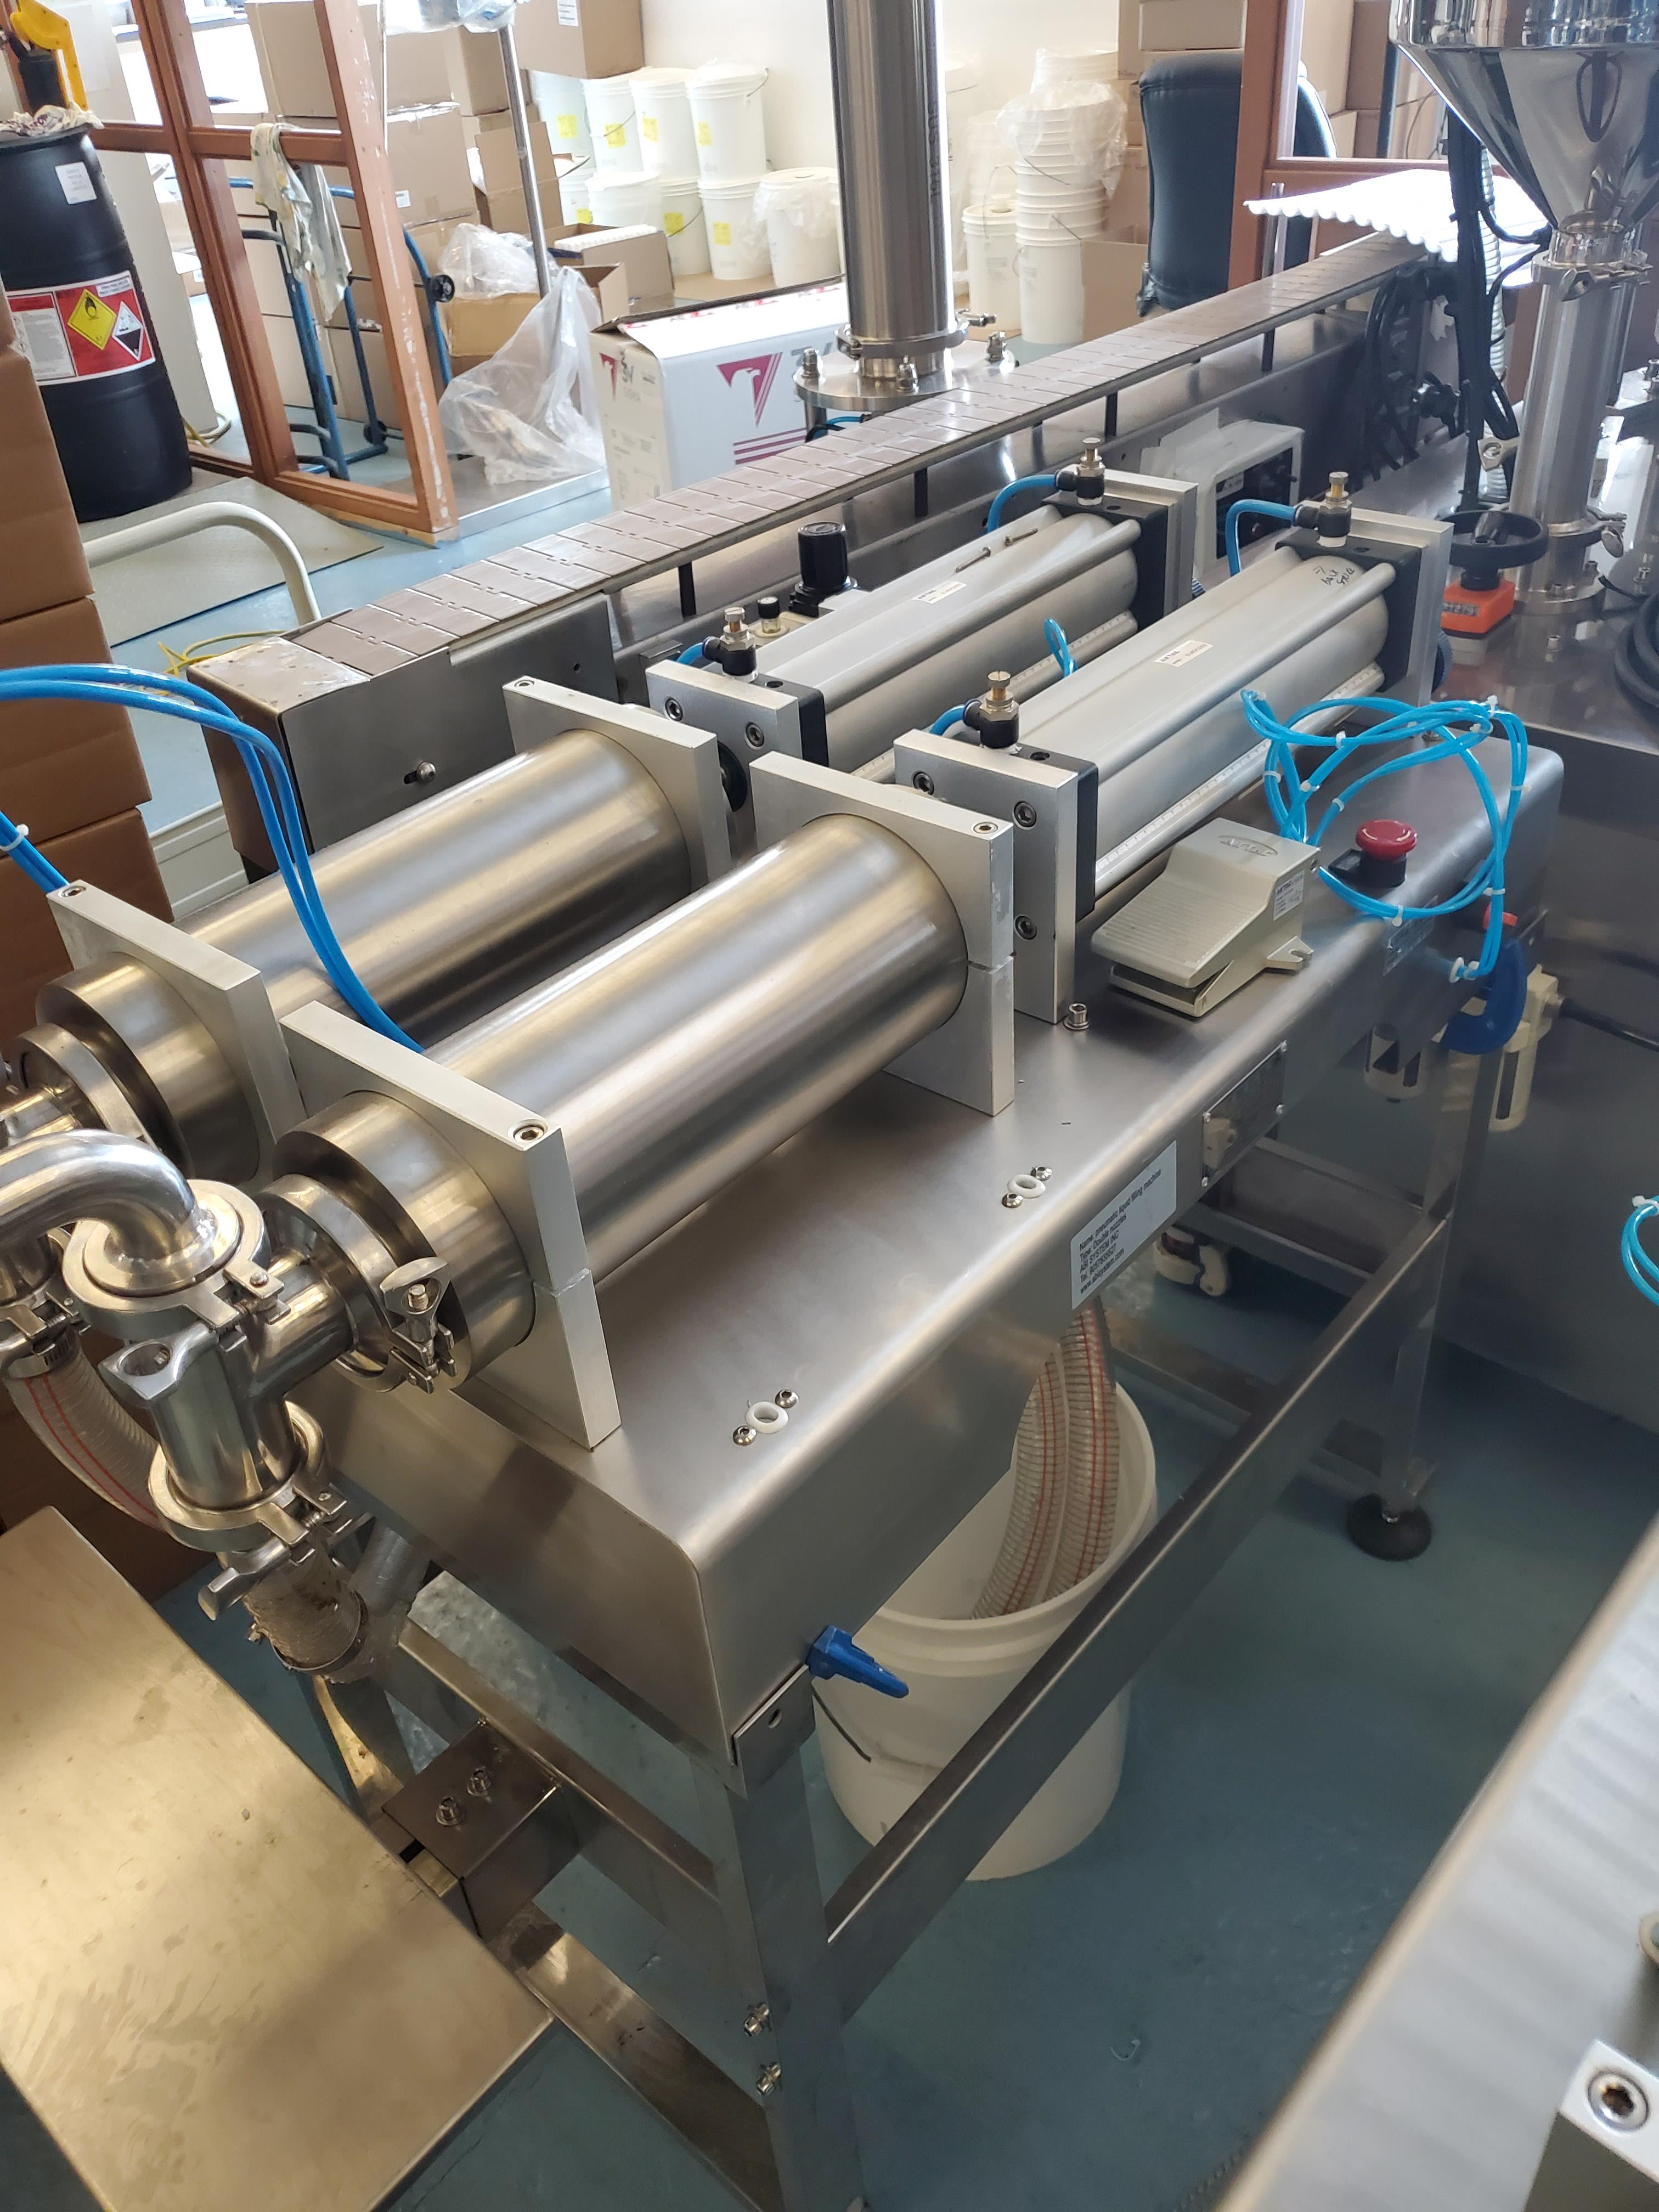 Dual Nozzle Stainless Steel Piston Filler - Image 2 of 4